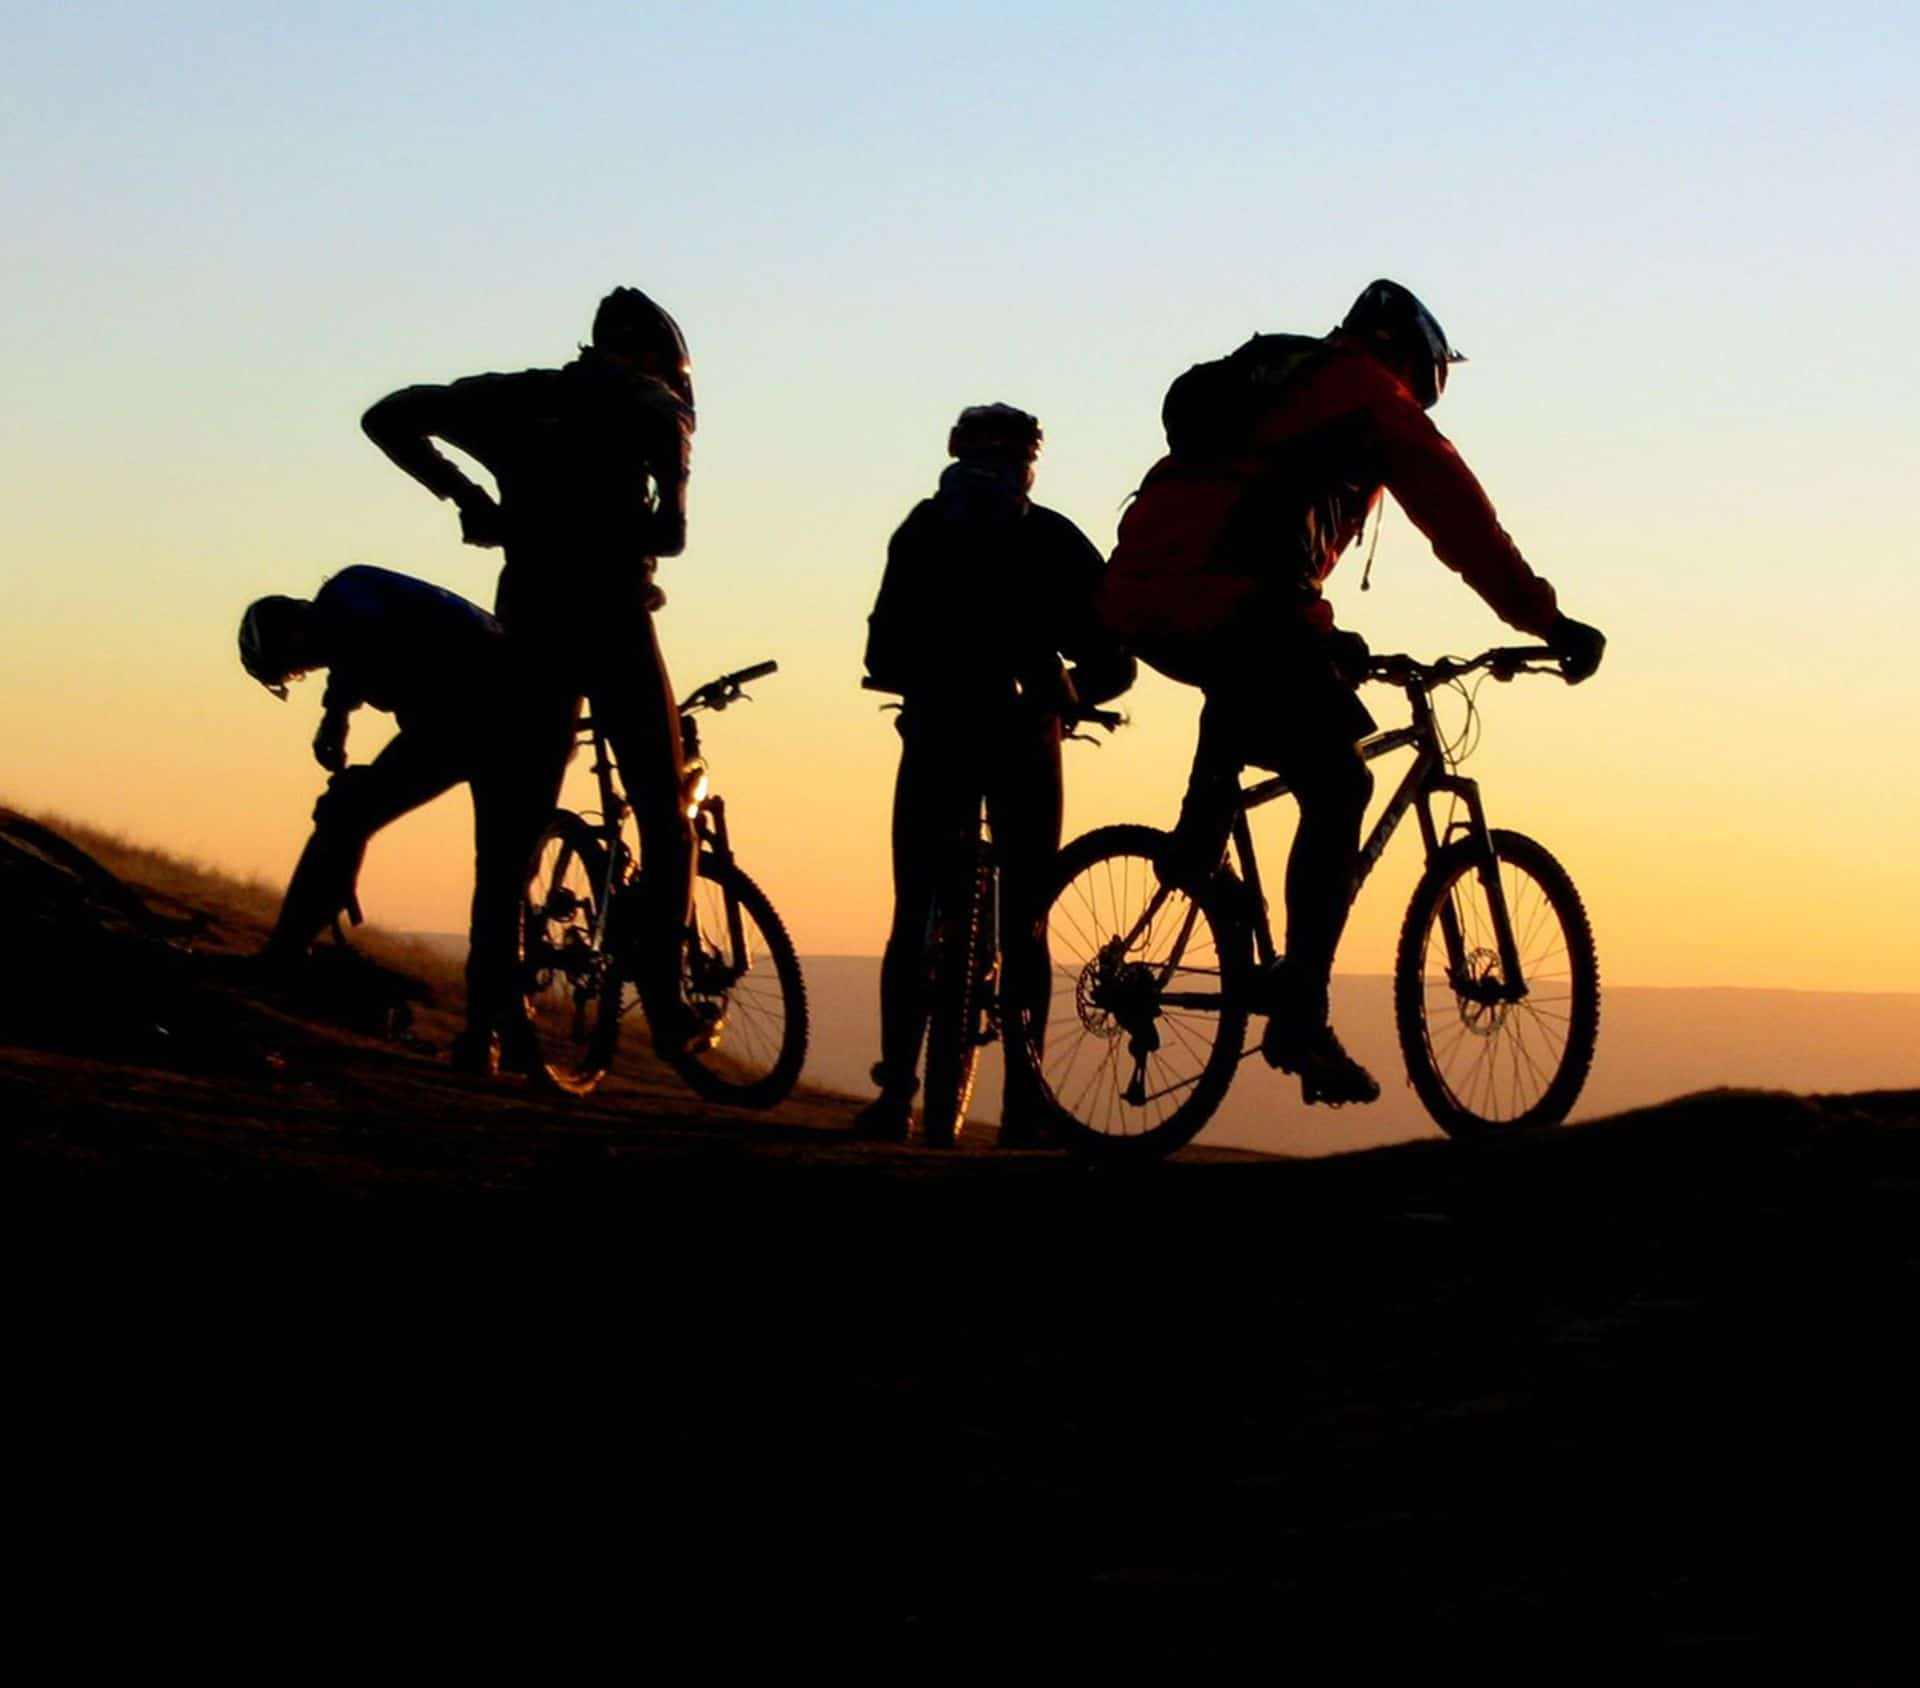 bikers with sunset